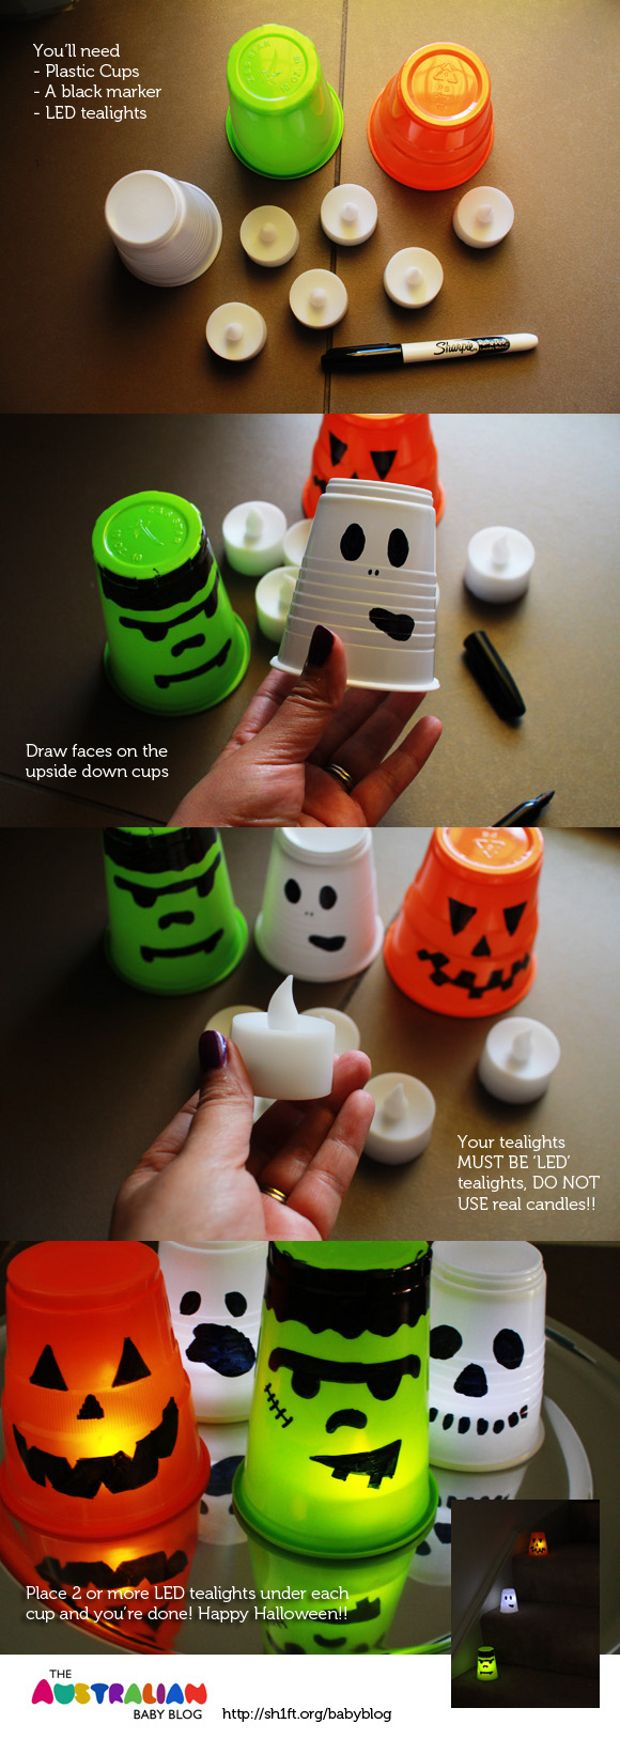 Halloween Celebration DIY - What is Halloween and Why it is Celebrated